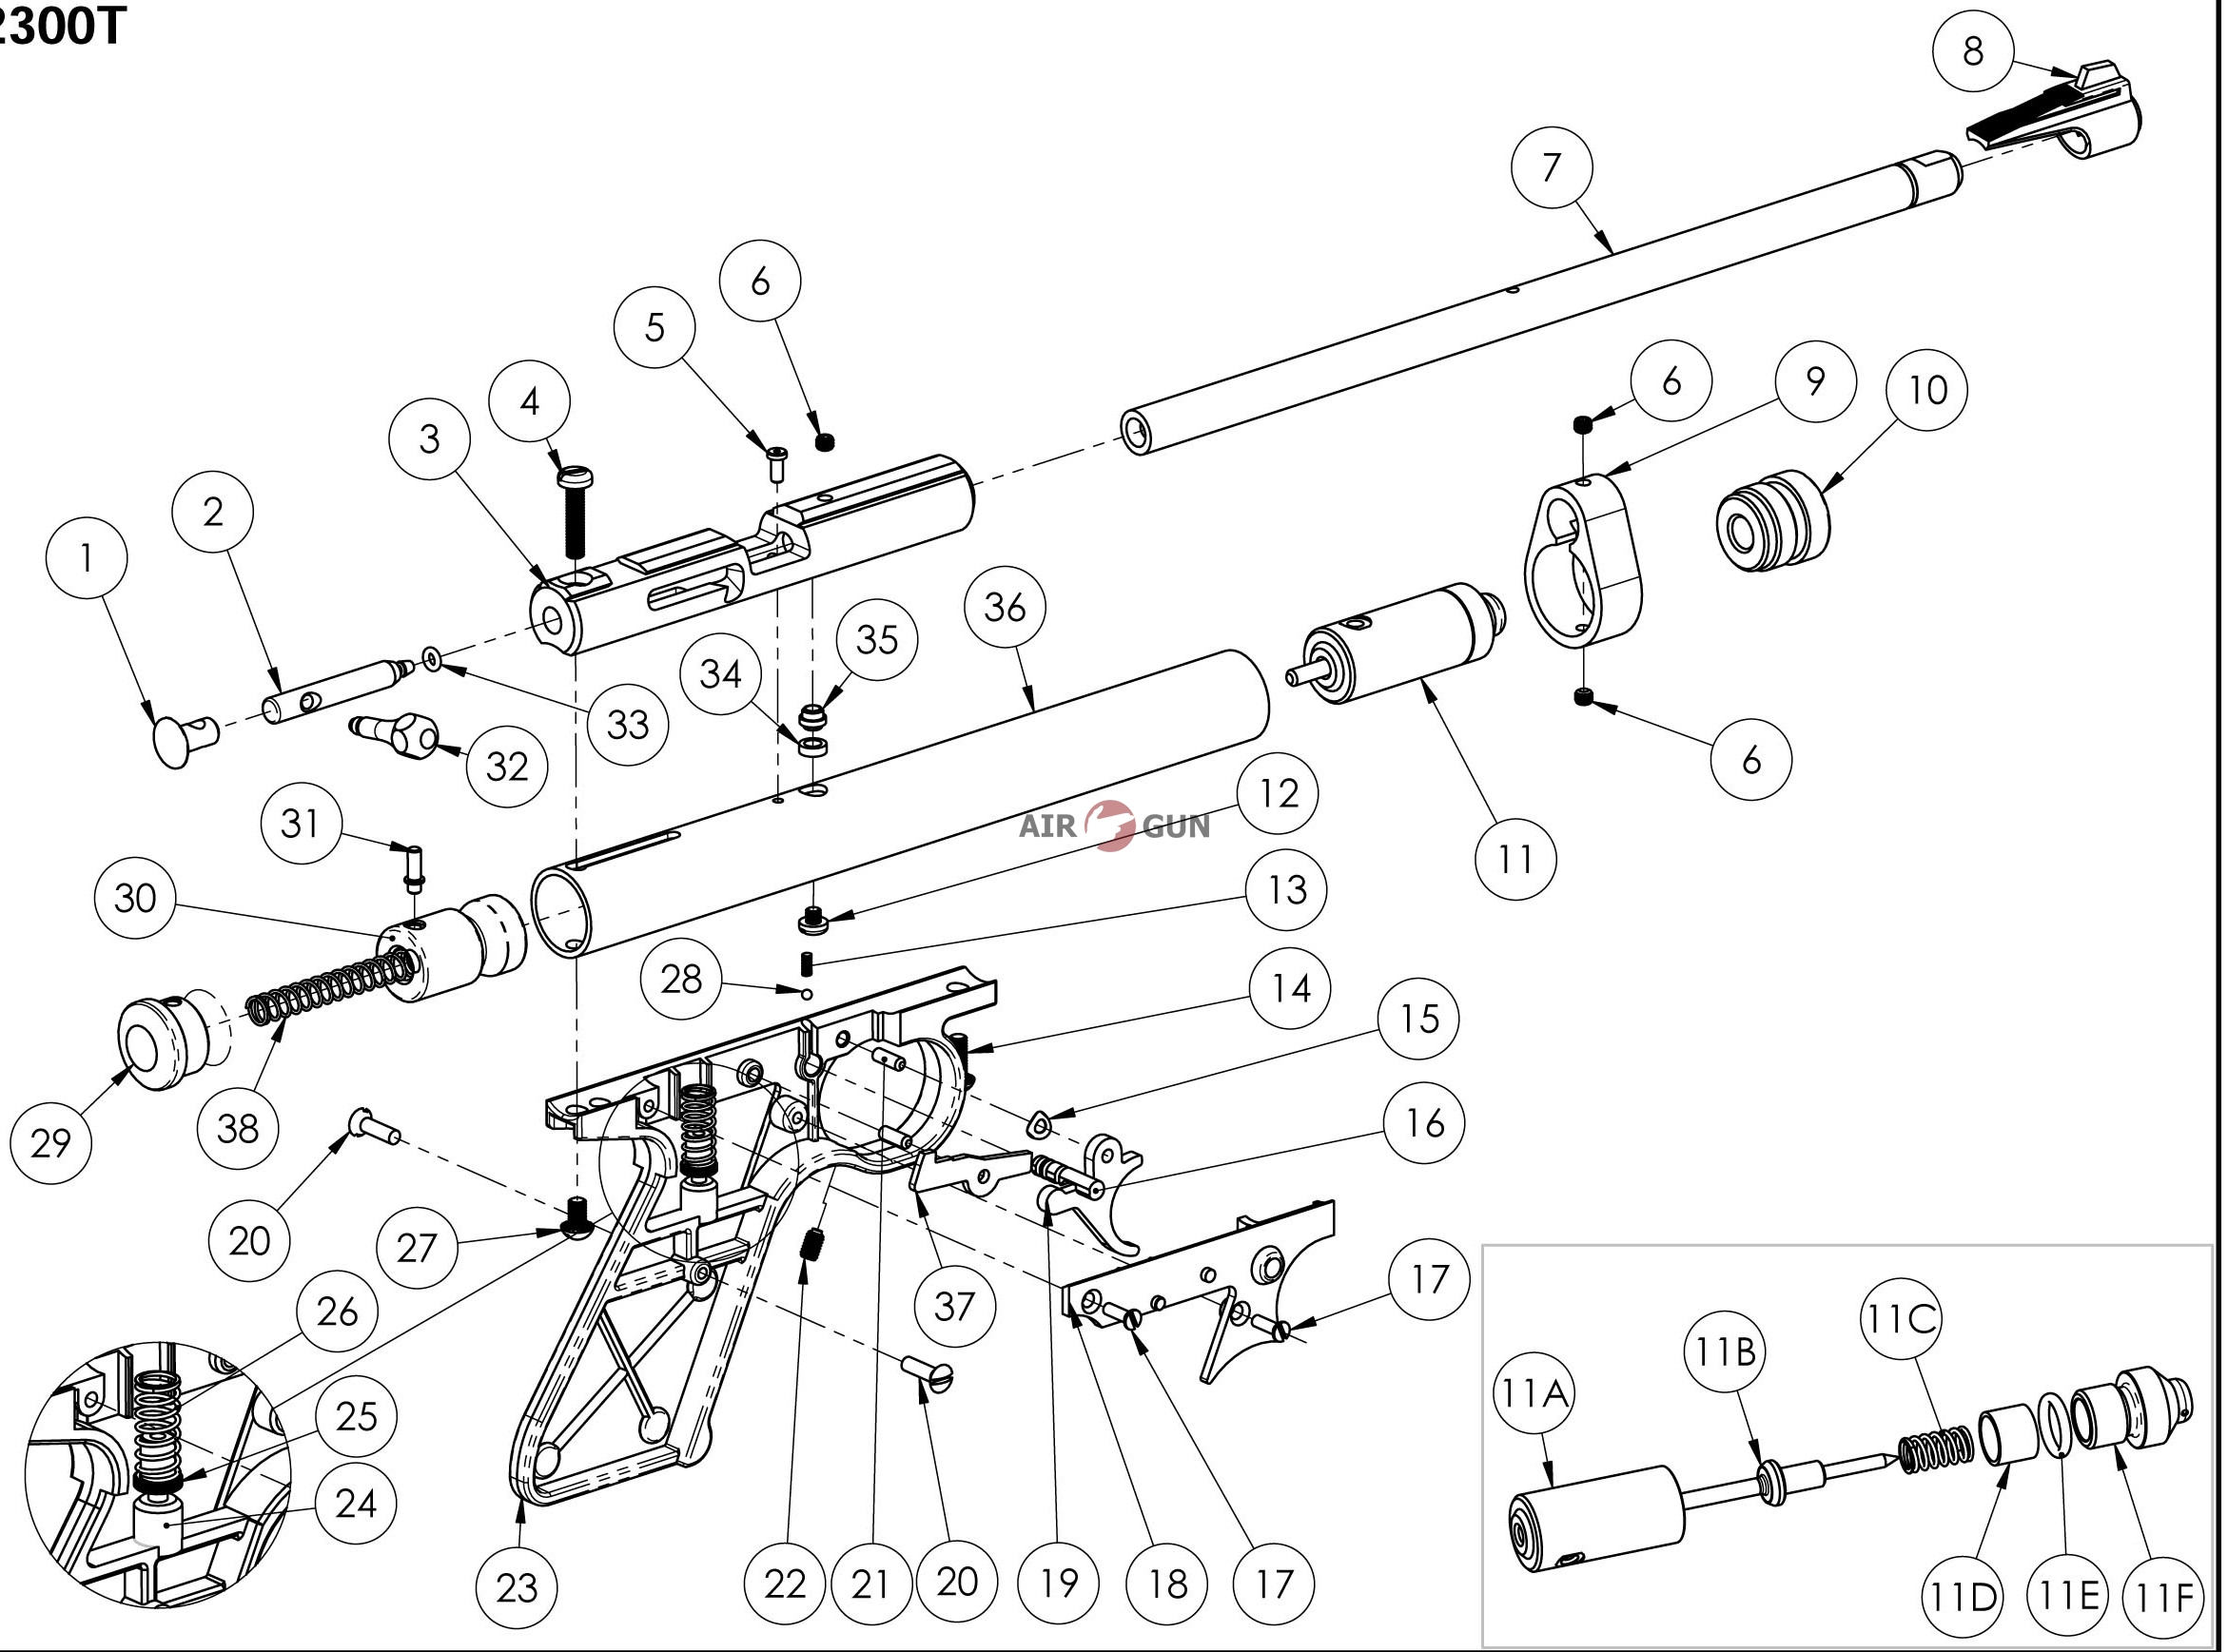 Crosman Schematic Diagram. Daiwa Schematic Diagram, Kershaw ... on